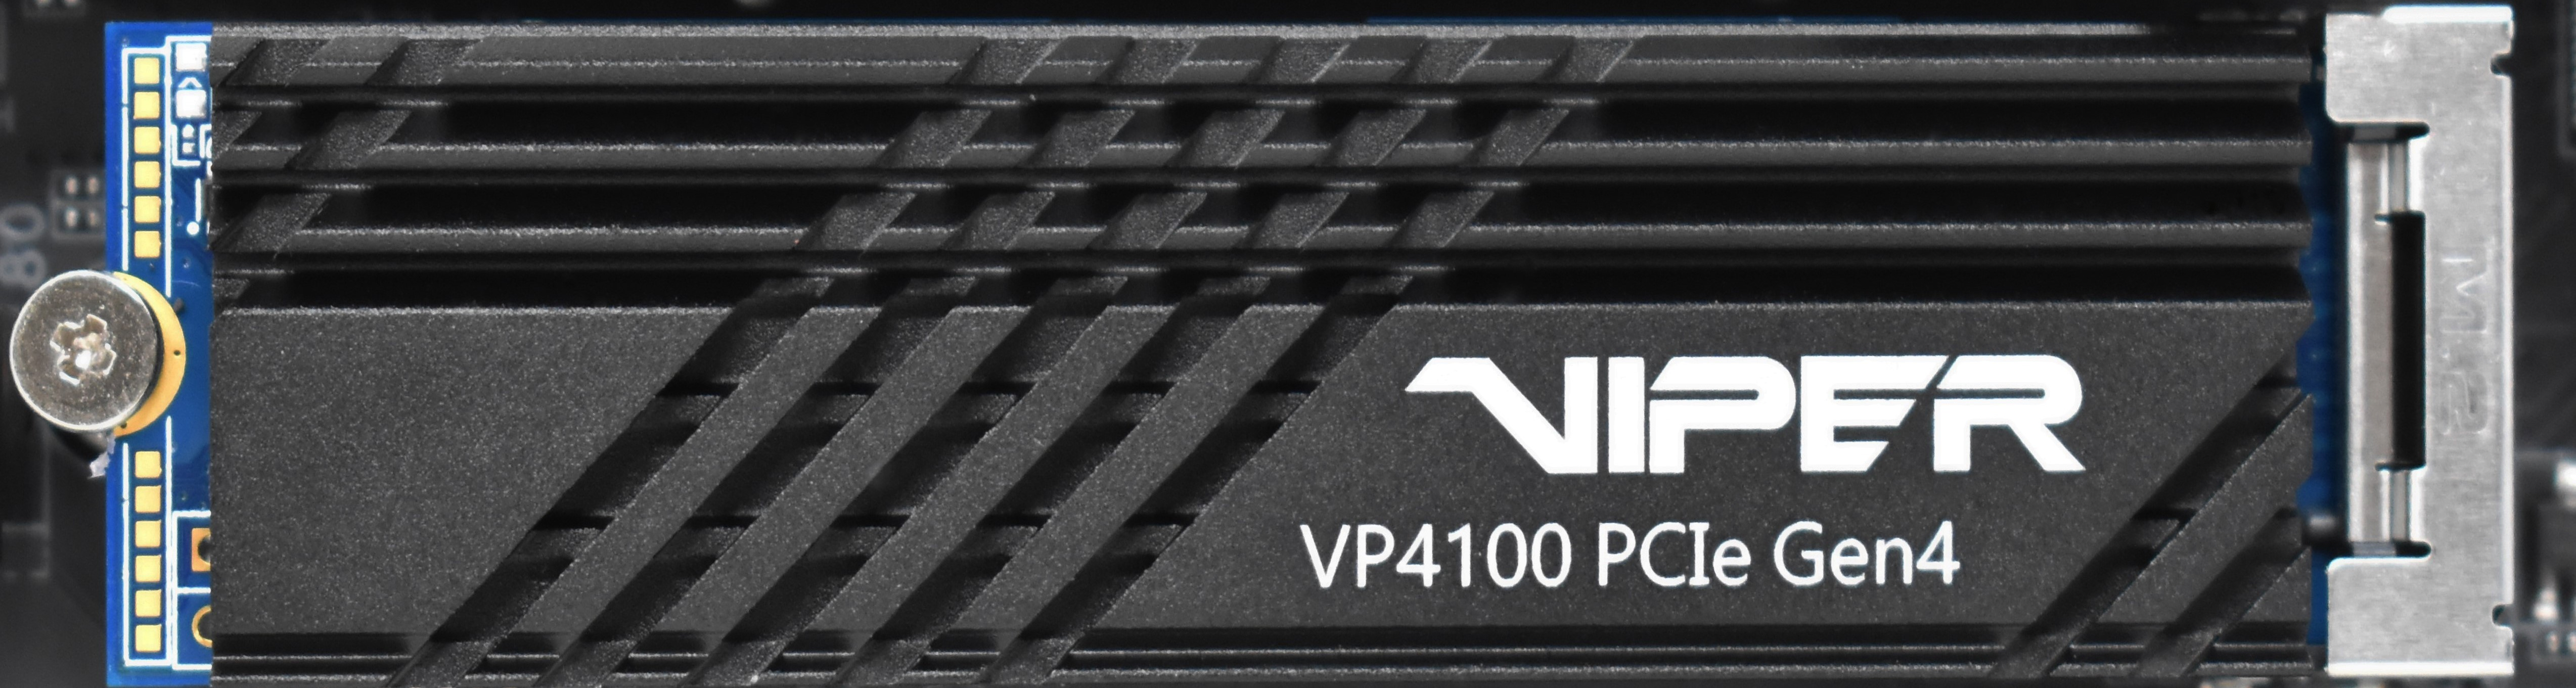 Patriot VP4100 un nuovo NVME 4.0